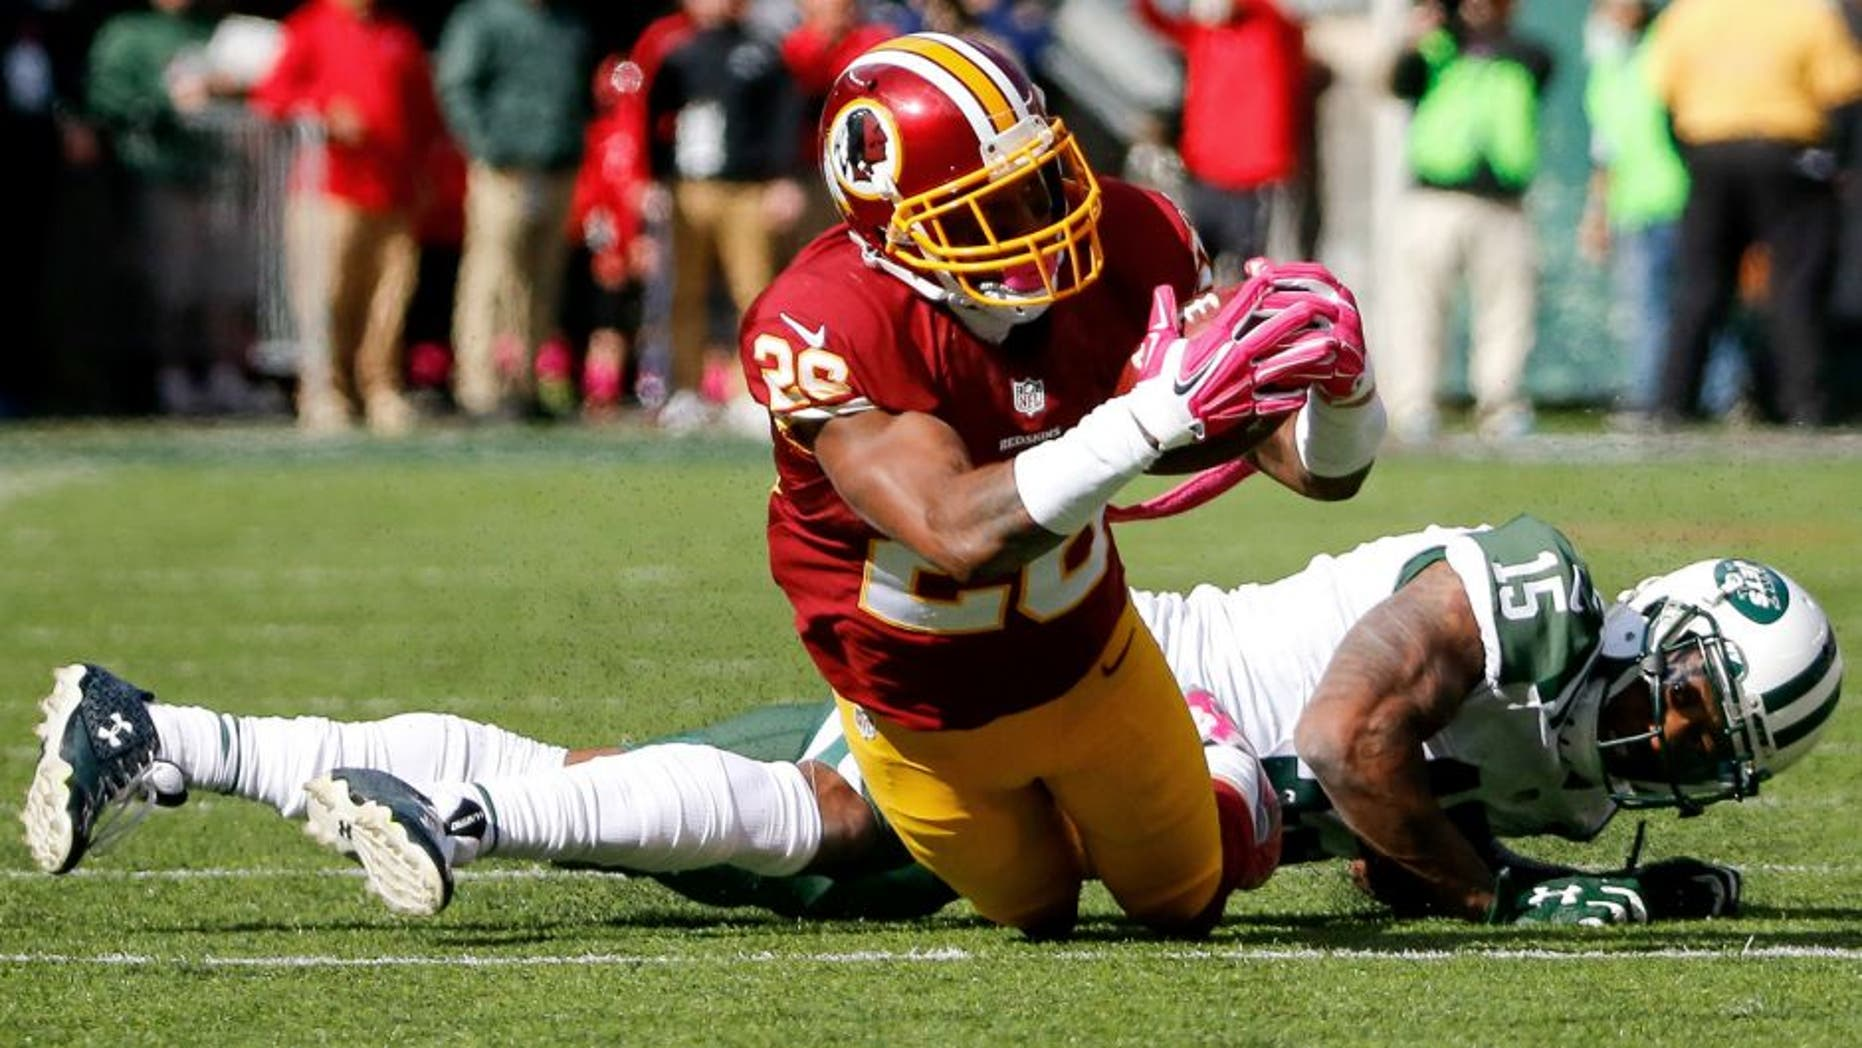 Oct 18, 2015; East Rutherford, NJ, USA; Washington Redskins cornerback Bashaud Breeland (26) intercepts a pass in the second quarter against the New York Jets at MetLife Stadium. Mandatory Credit: Vincent Carchietta-USA TODAY Sports